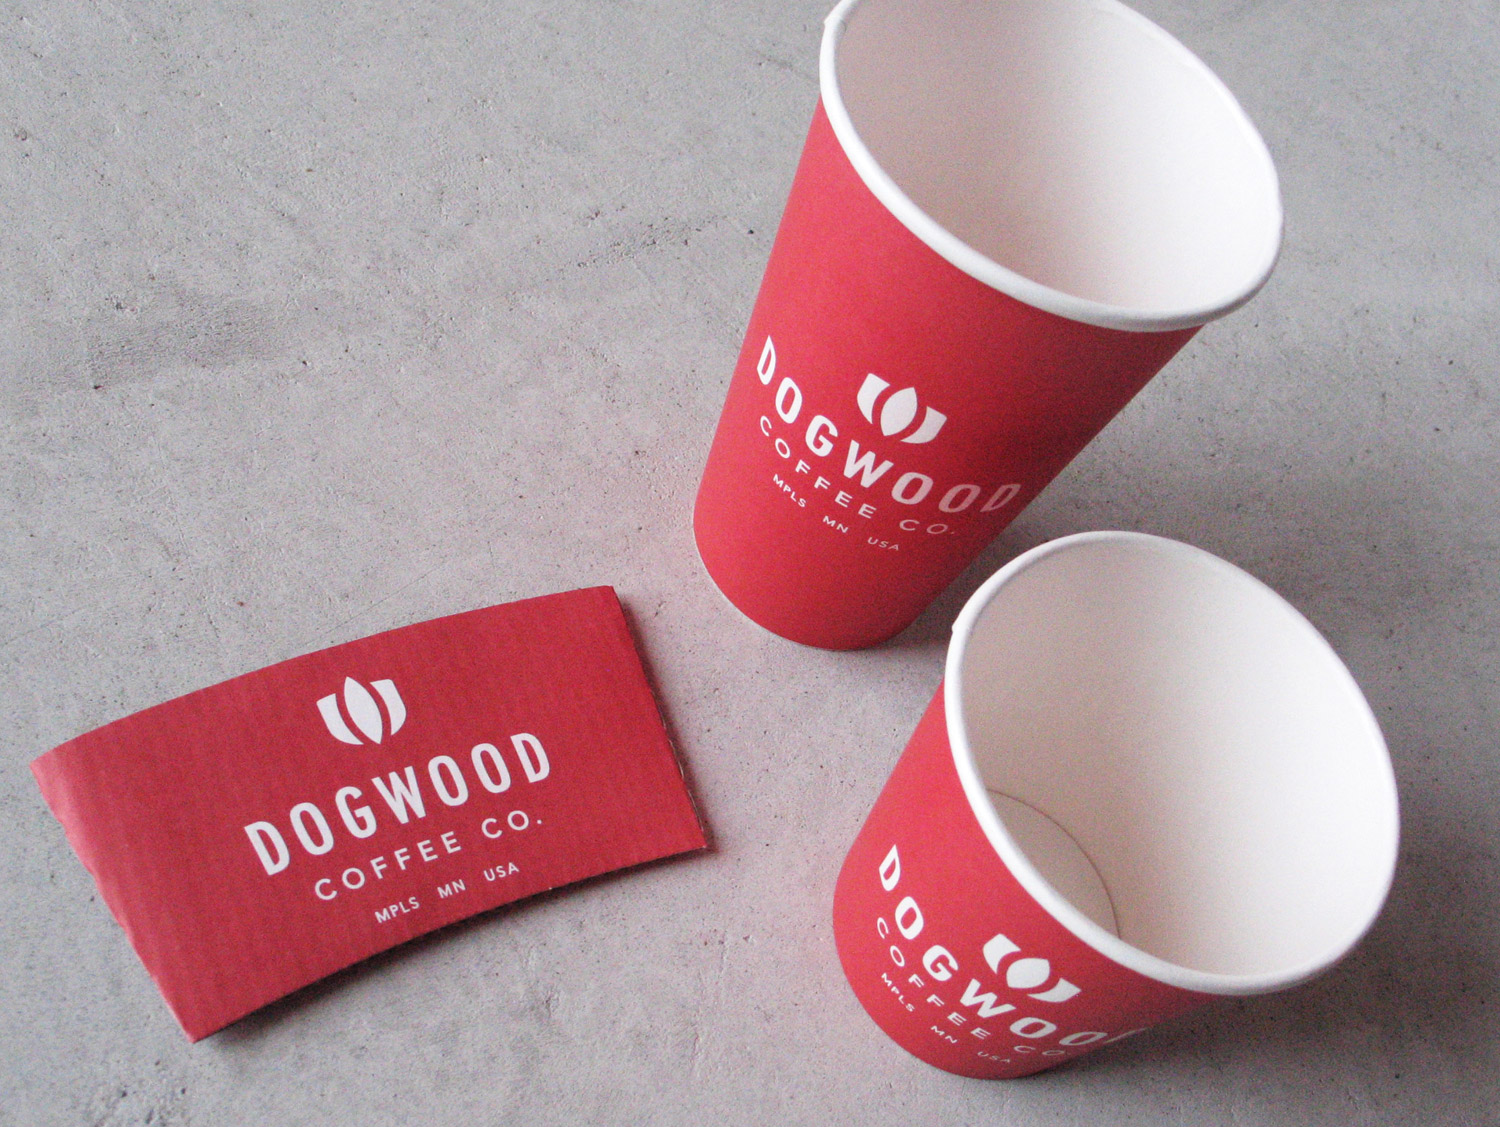 Dogwood-Coffee-Co-print-05.jpg